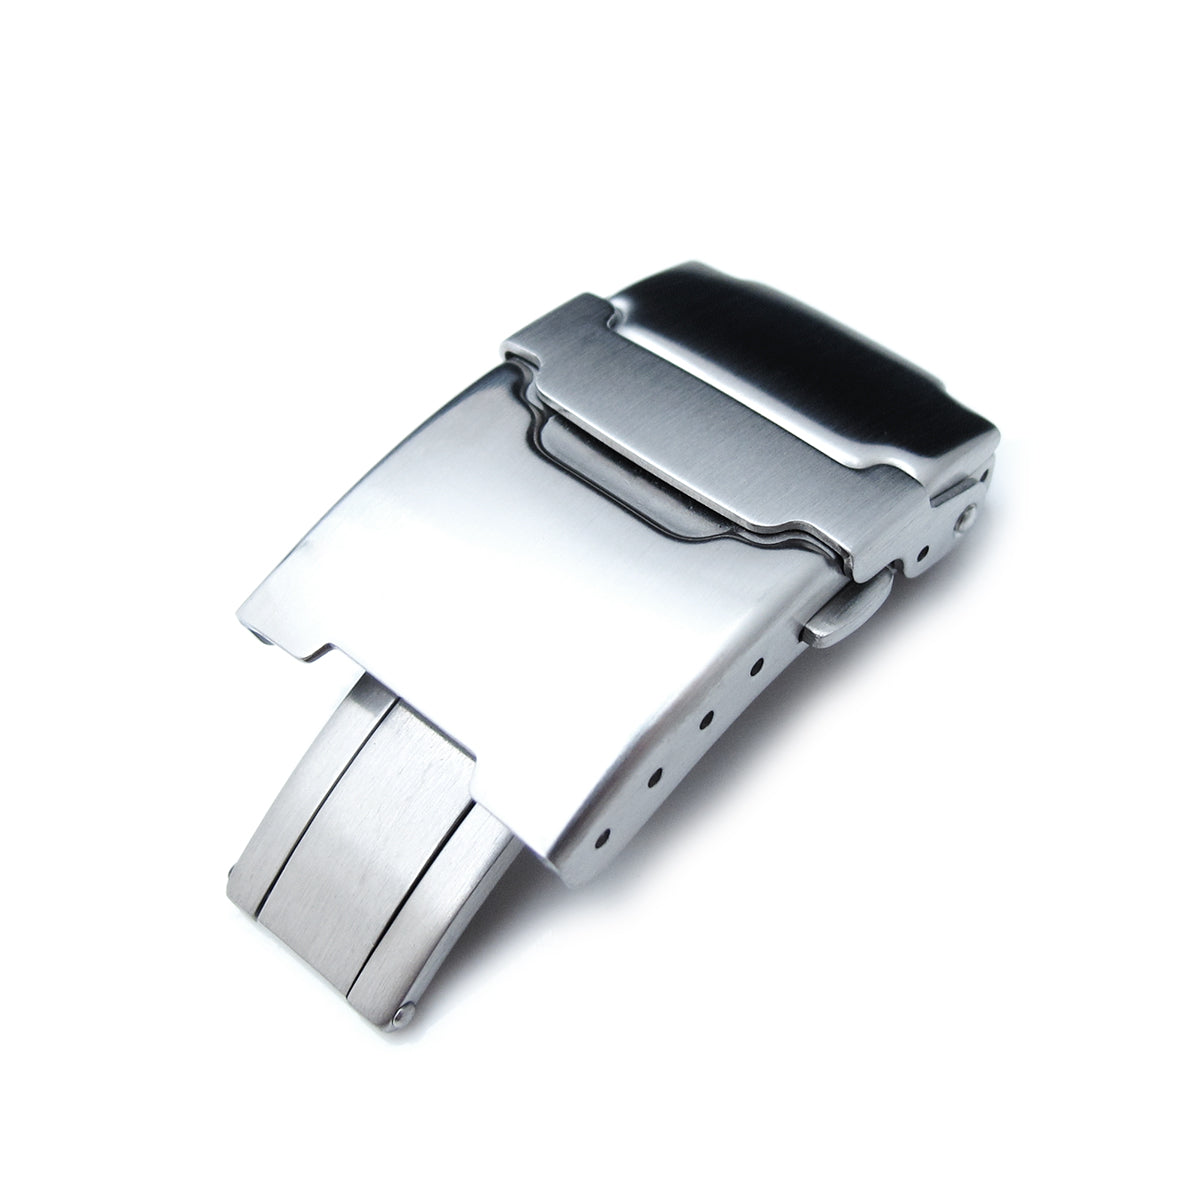 20mm Brushed Stainless Steel Push Button Diver Clasp for Watch Band 4 adjust holes and improved Flip-Lock Strapcode Buckles